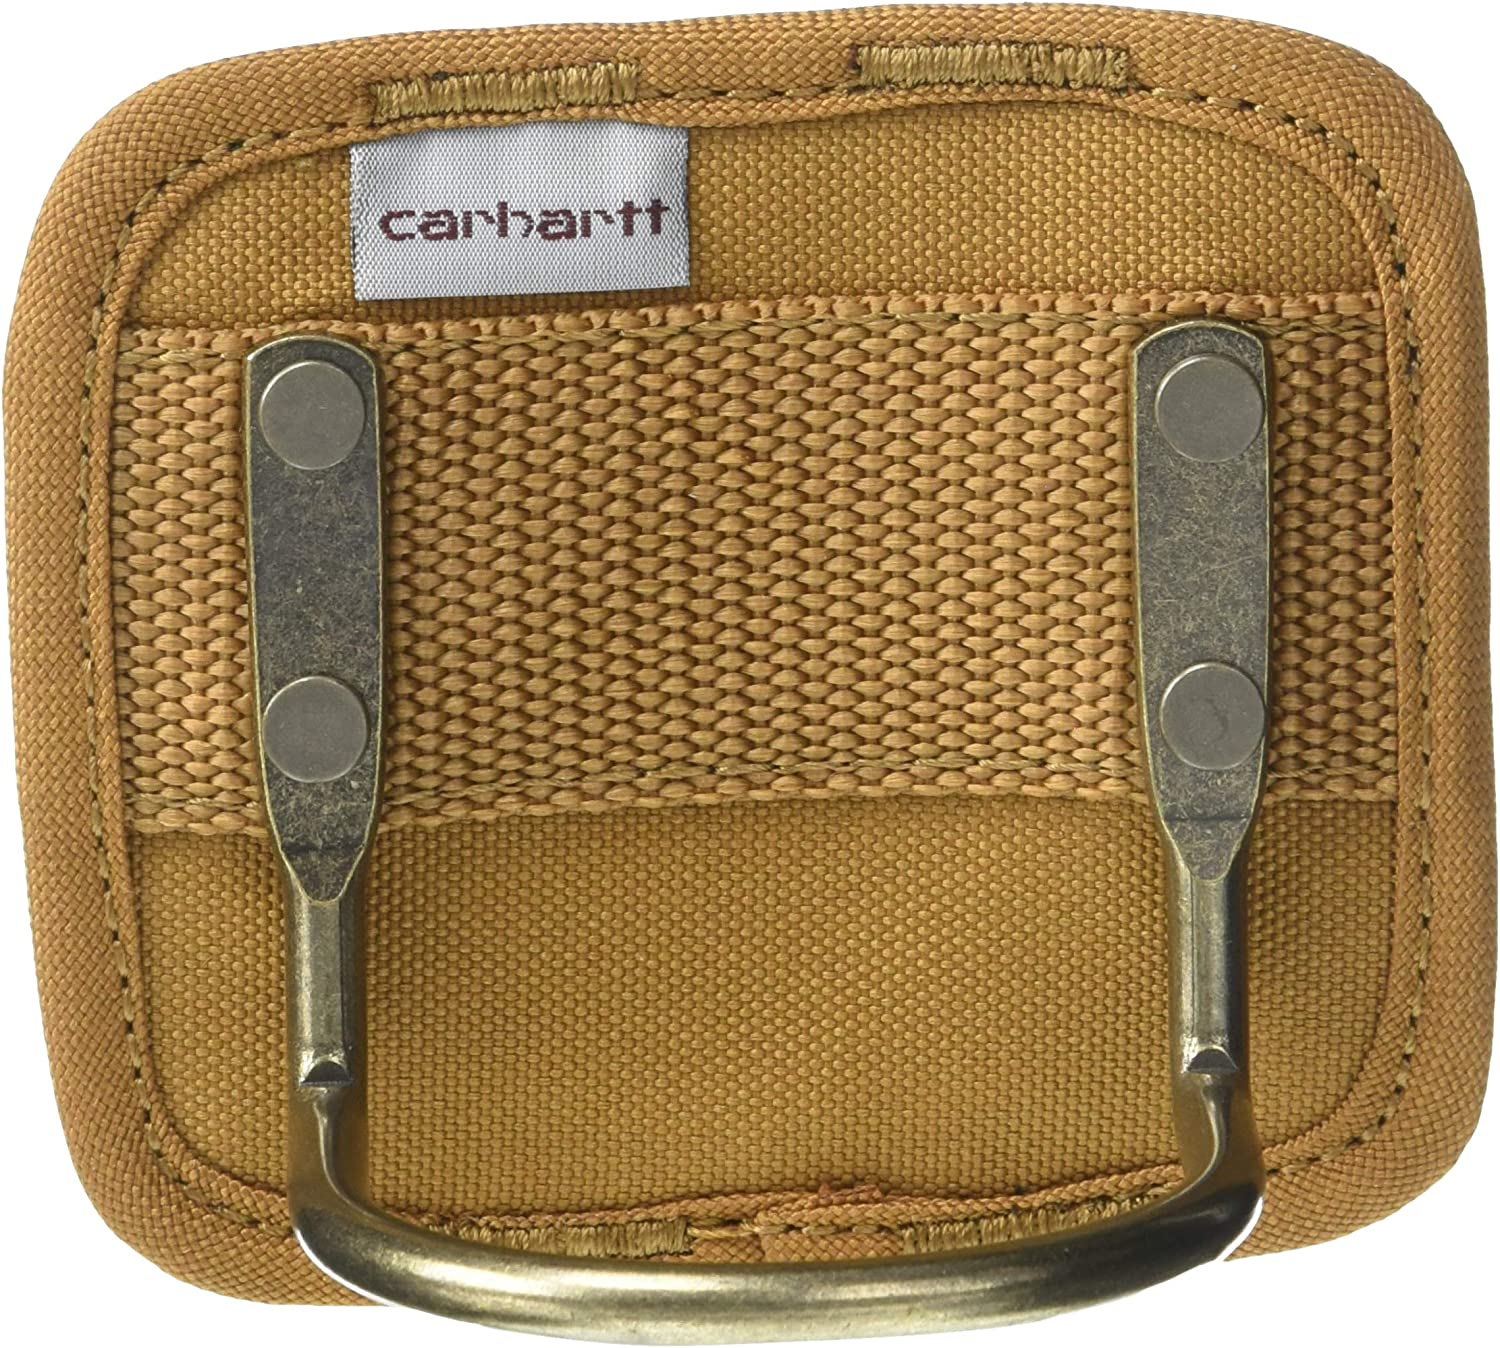 Carpenters Pouch Carhartt Legacy Build Your Own Belt Custom Tool Belt Pouch